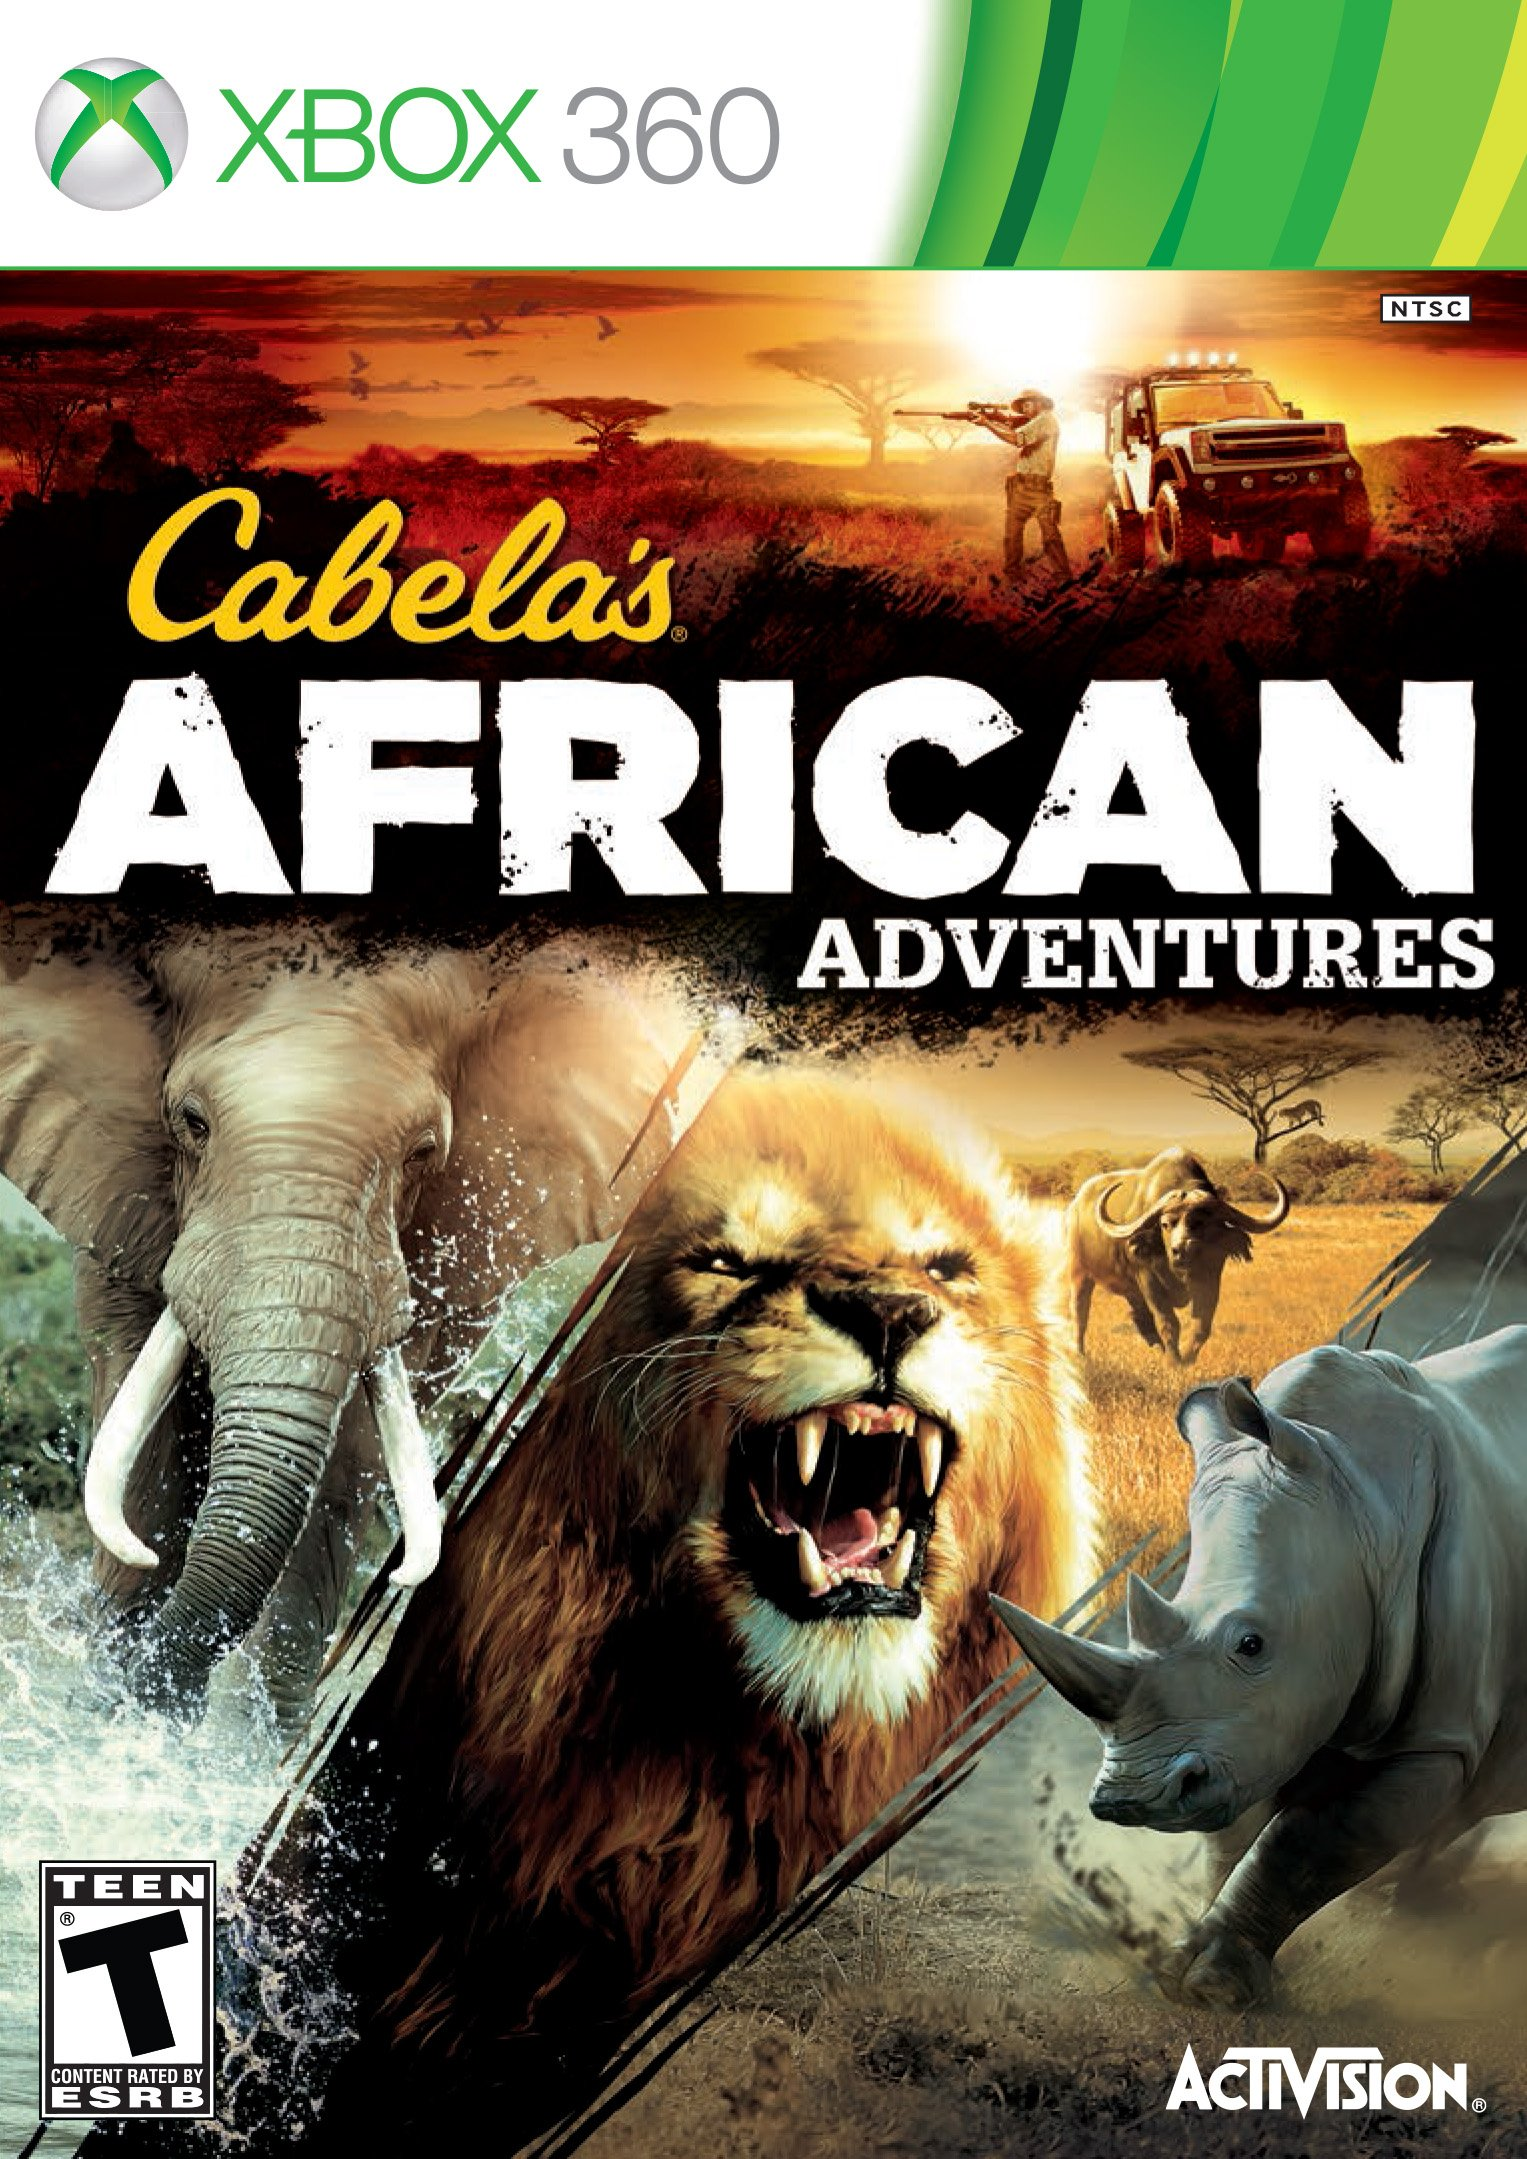 Cabela's African Adventures Release Date (Xbox 360, PS3, Wii) Xbox 360 Game Covers Download